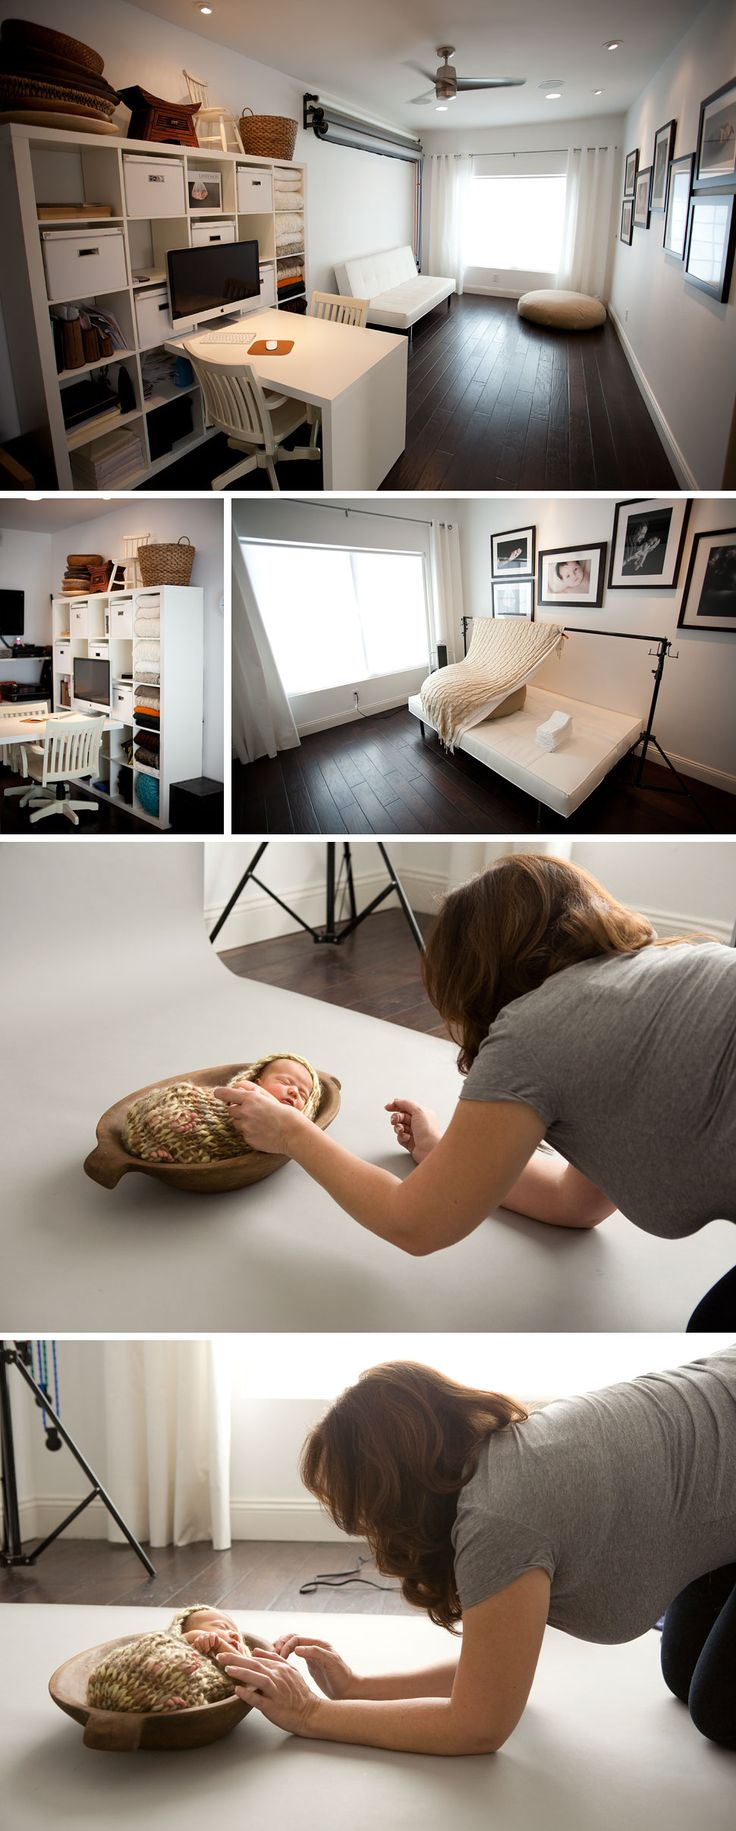 Natural light photo studio - I want a studio like this one, pretty please!